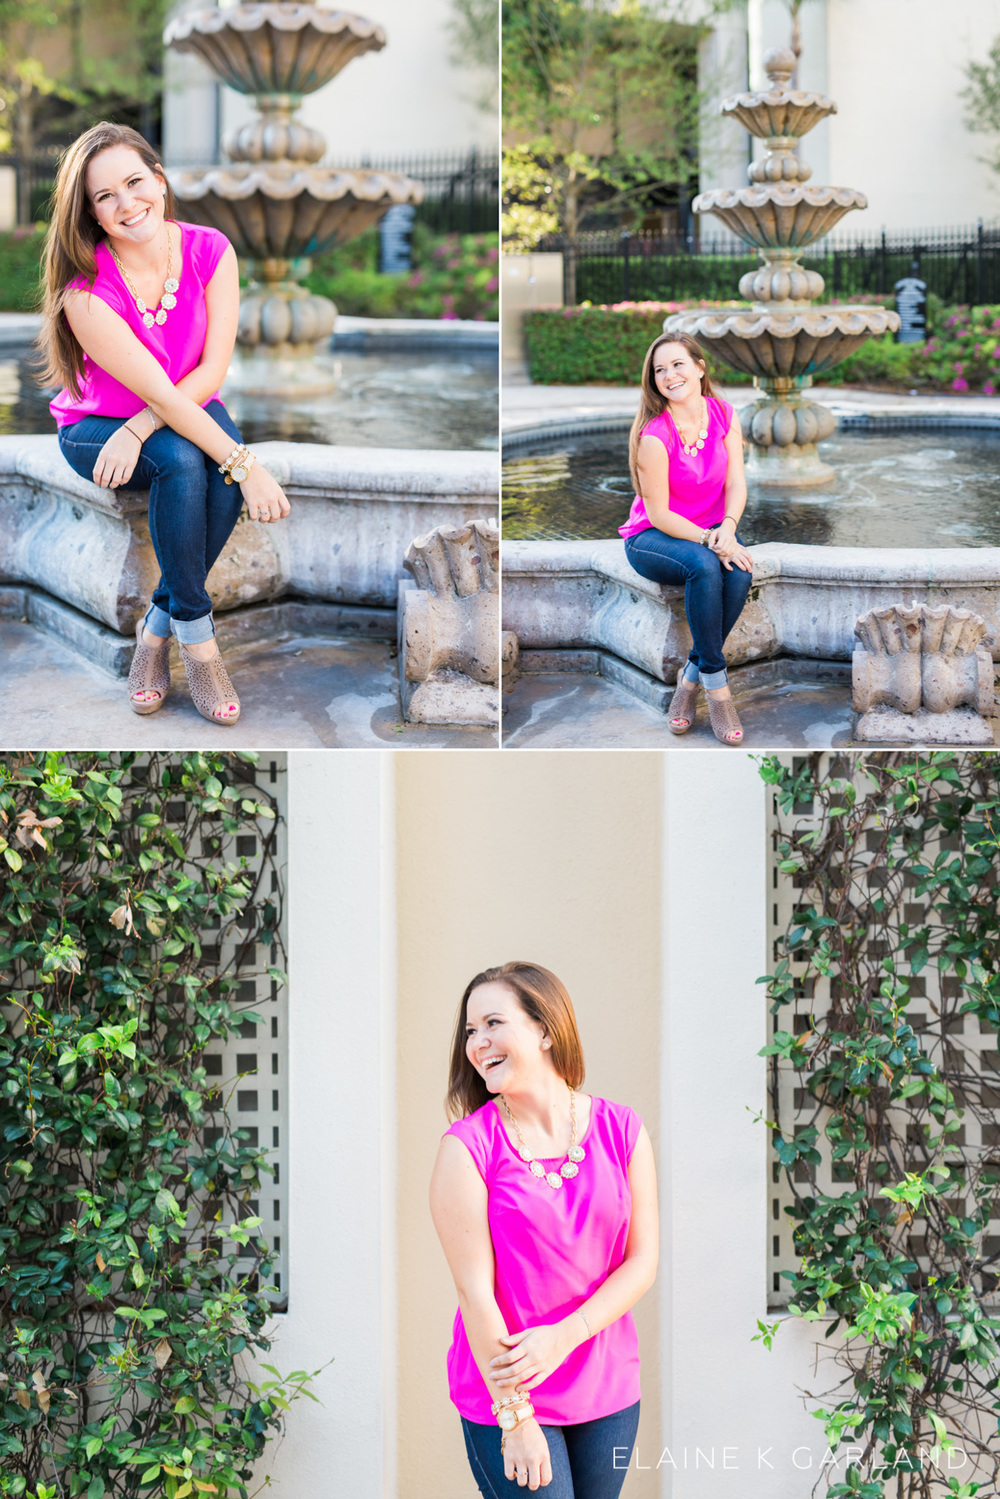 Downtown-clearwater-portrait-session-6.jpg